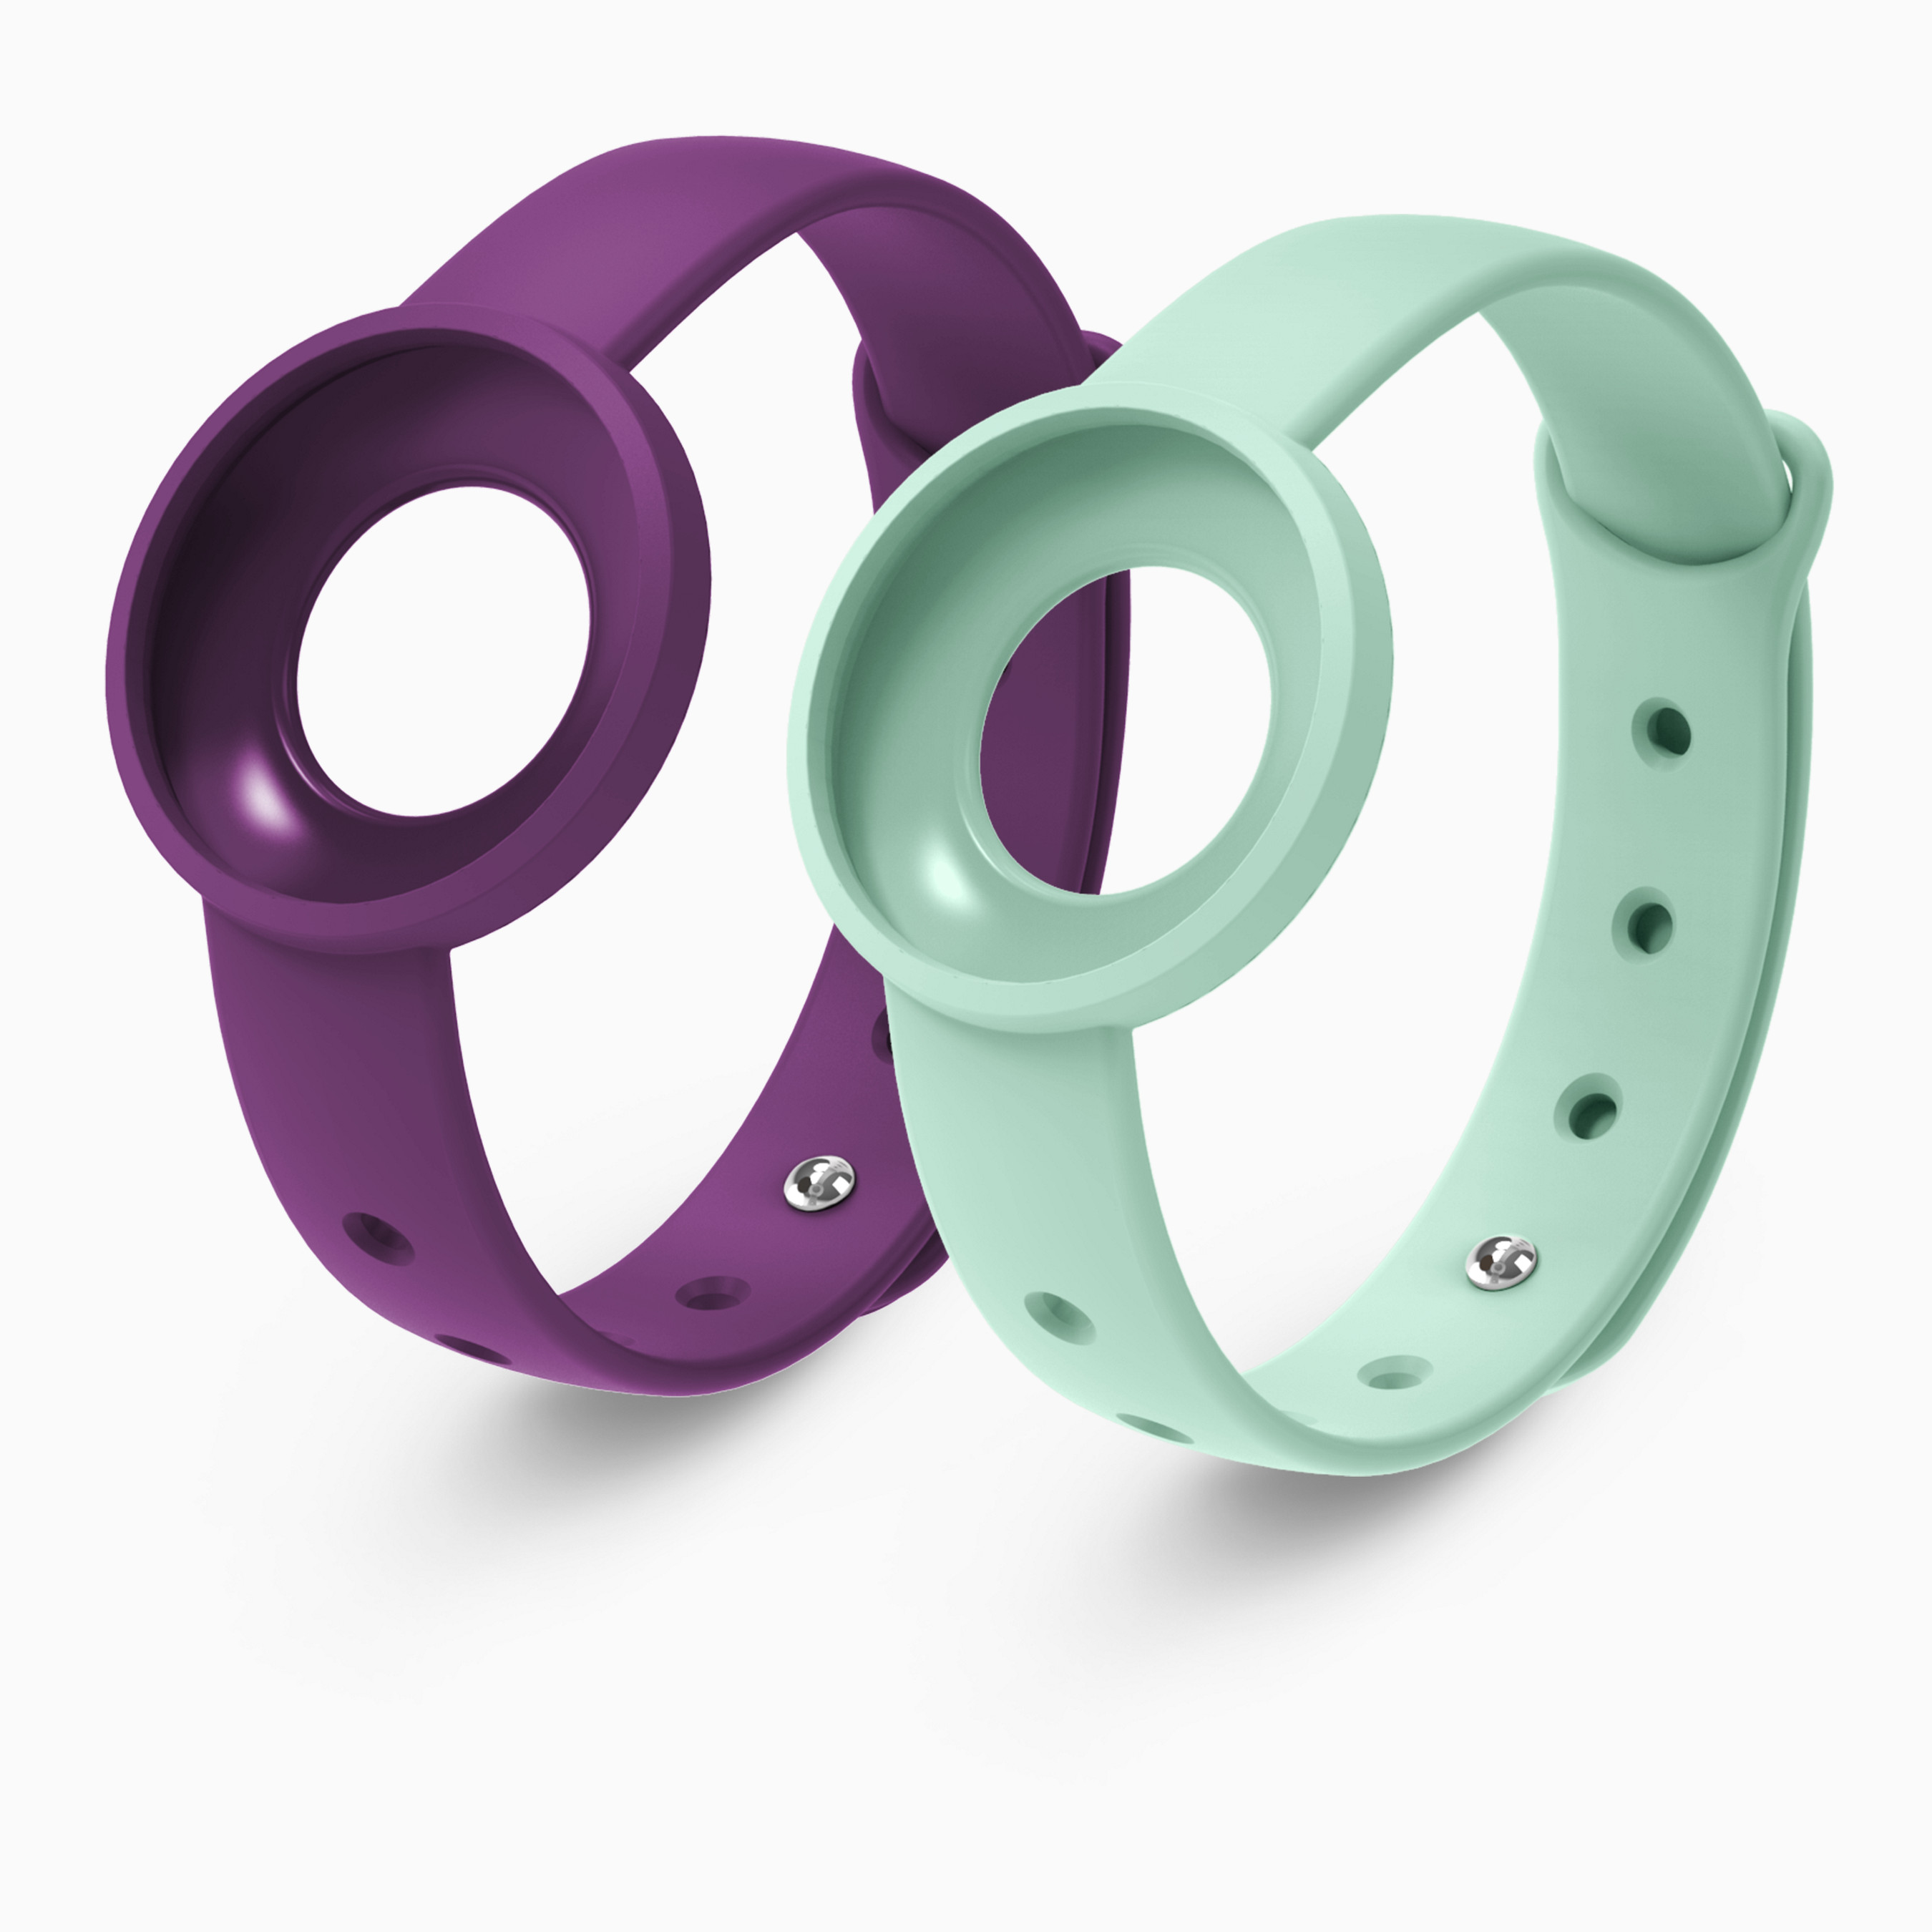 Misfit Shine 2 Sport Bands 2-Pack